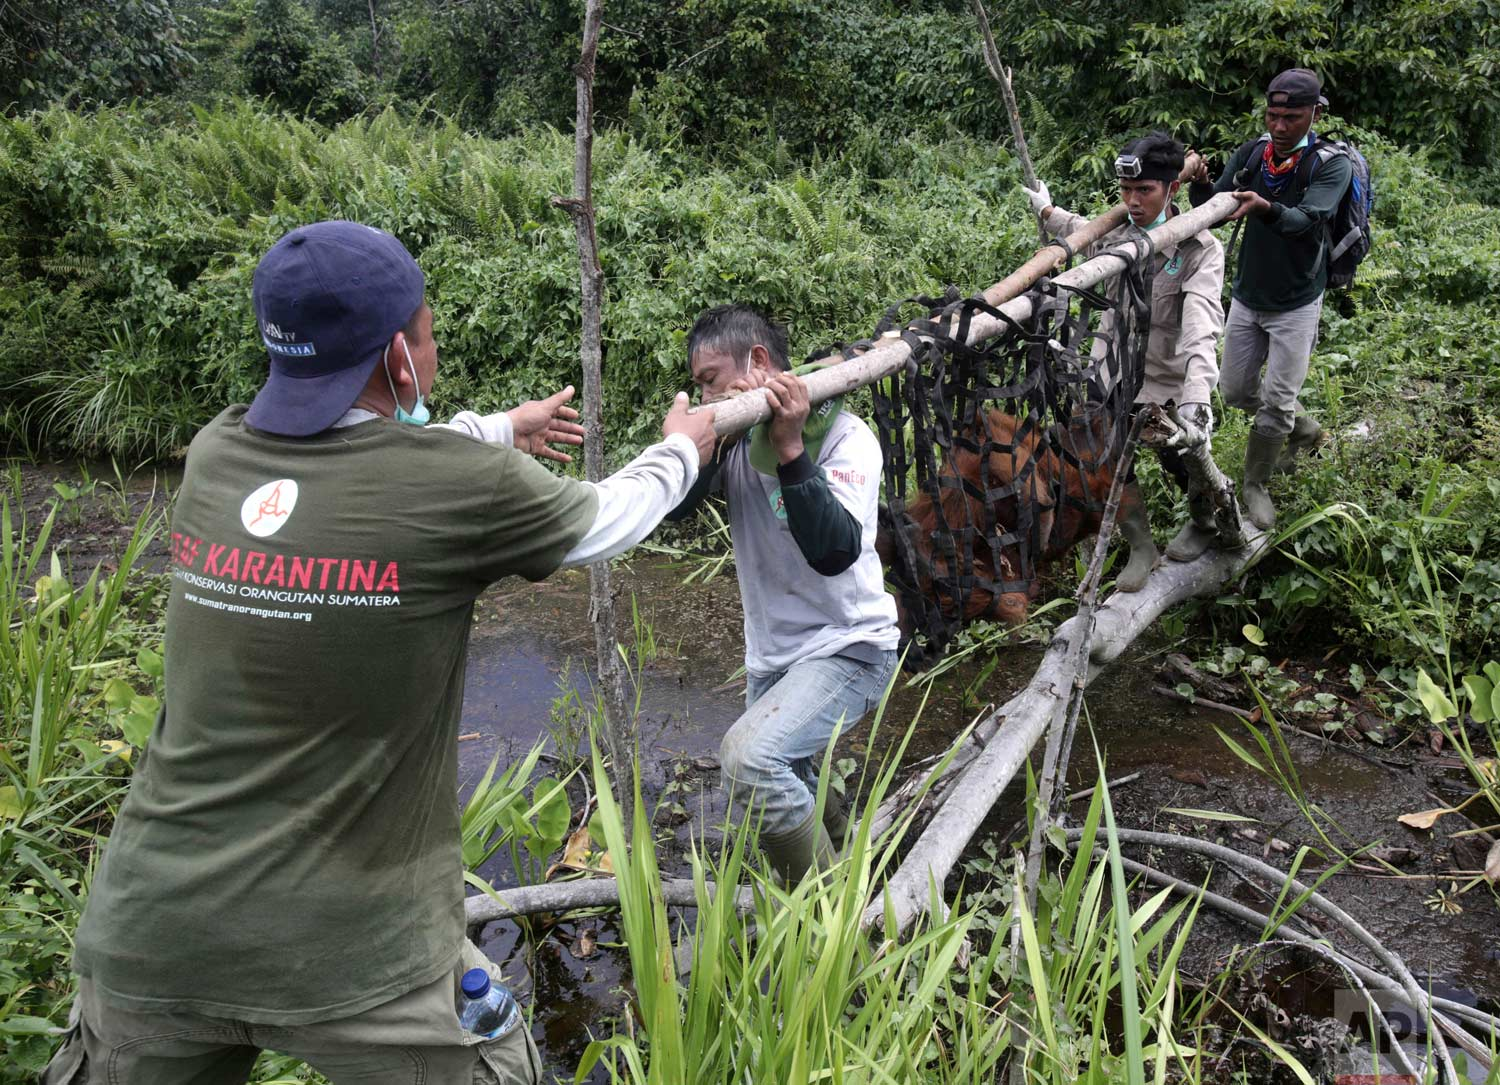 In this Thursday, Aug. 10, 2017 photo, conservationists of the Sumatran Orangutan Conservation Program (SOCP) use a makeshift stretcher to carry a tranquilized male orangutan to be relocated from a swath of forest located too close to a palm oil plantation at Tripa peat swamp in Aceh province, Indonesia. (AP Photo/Binsar Bakkara)